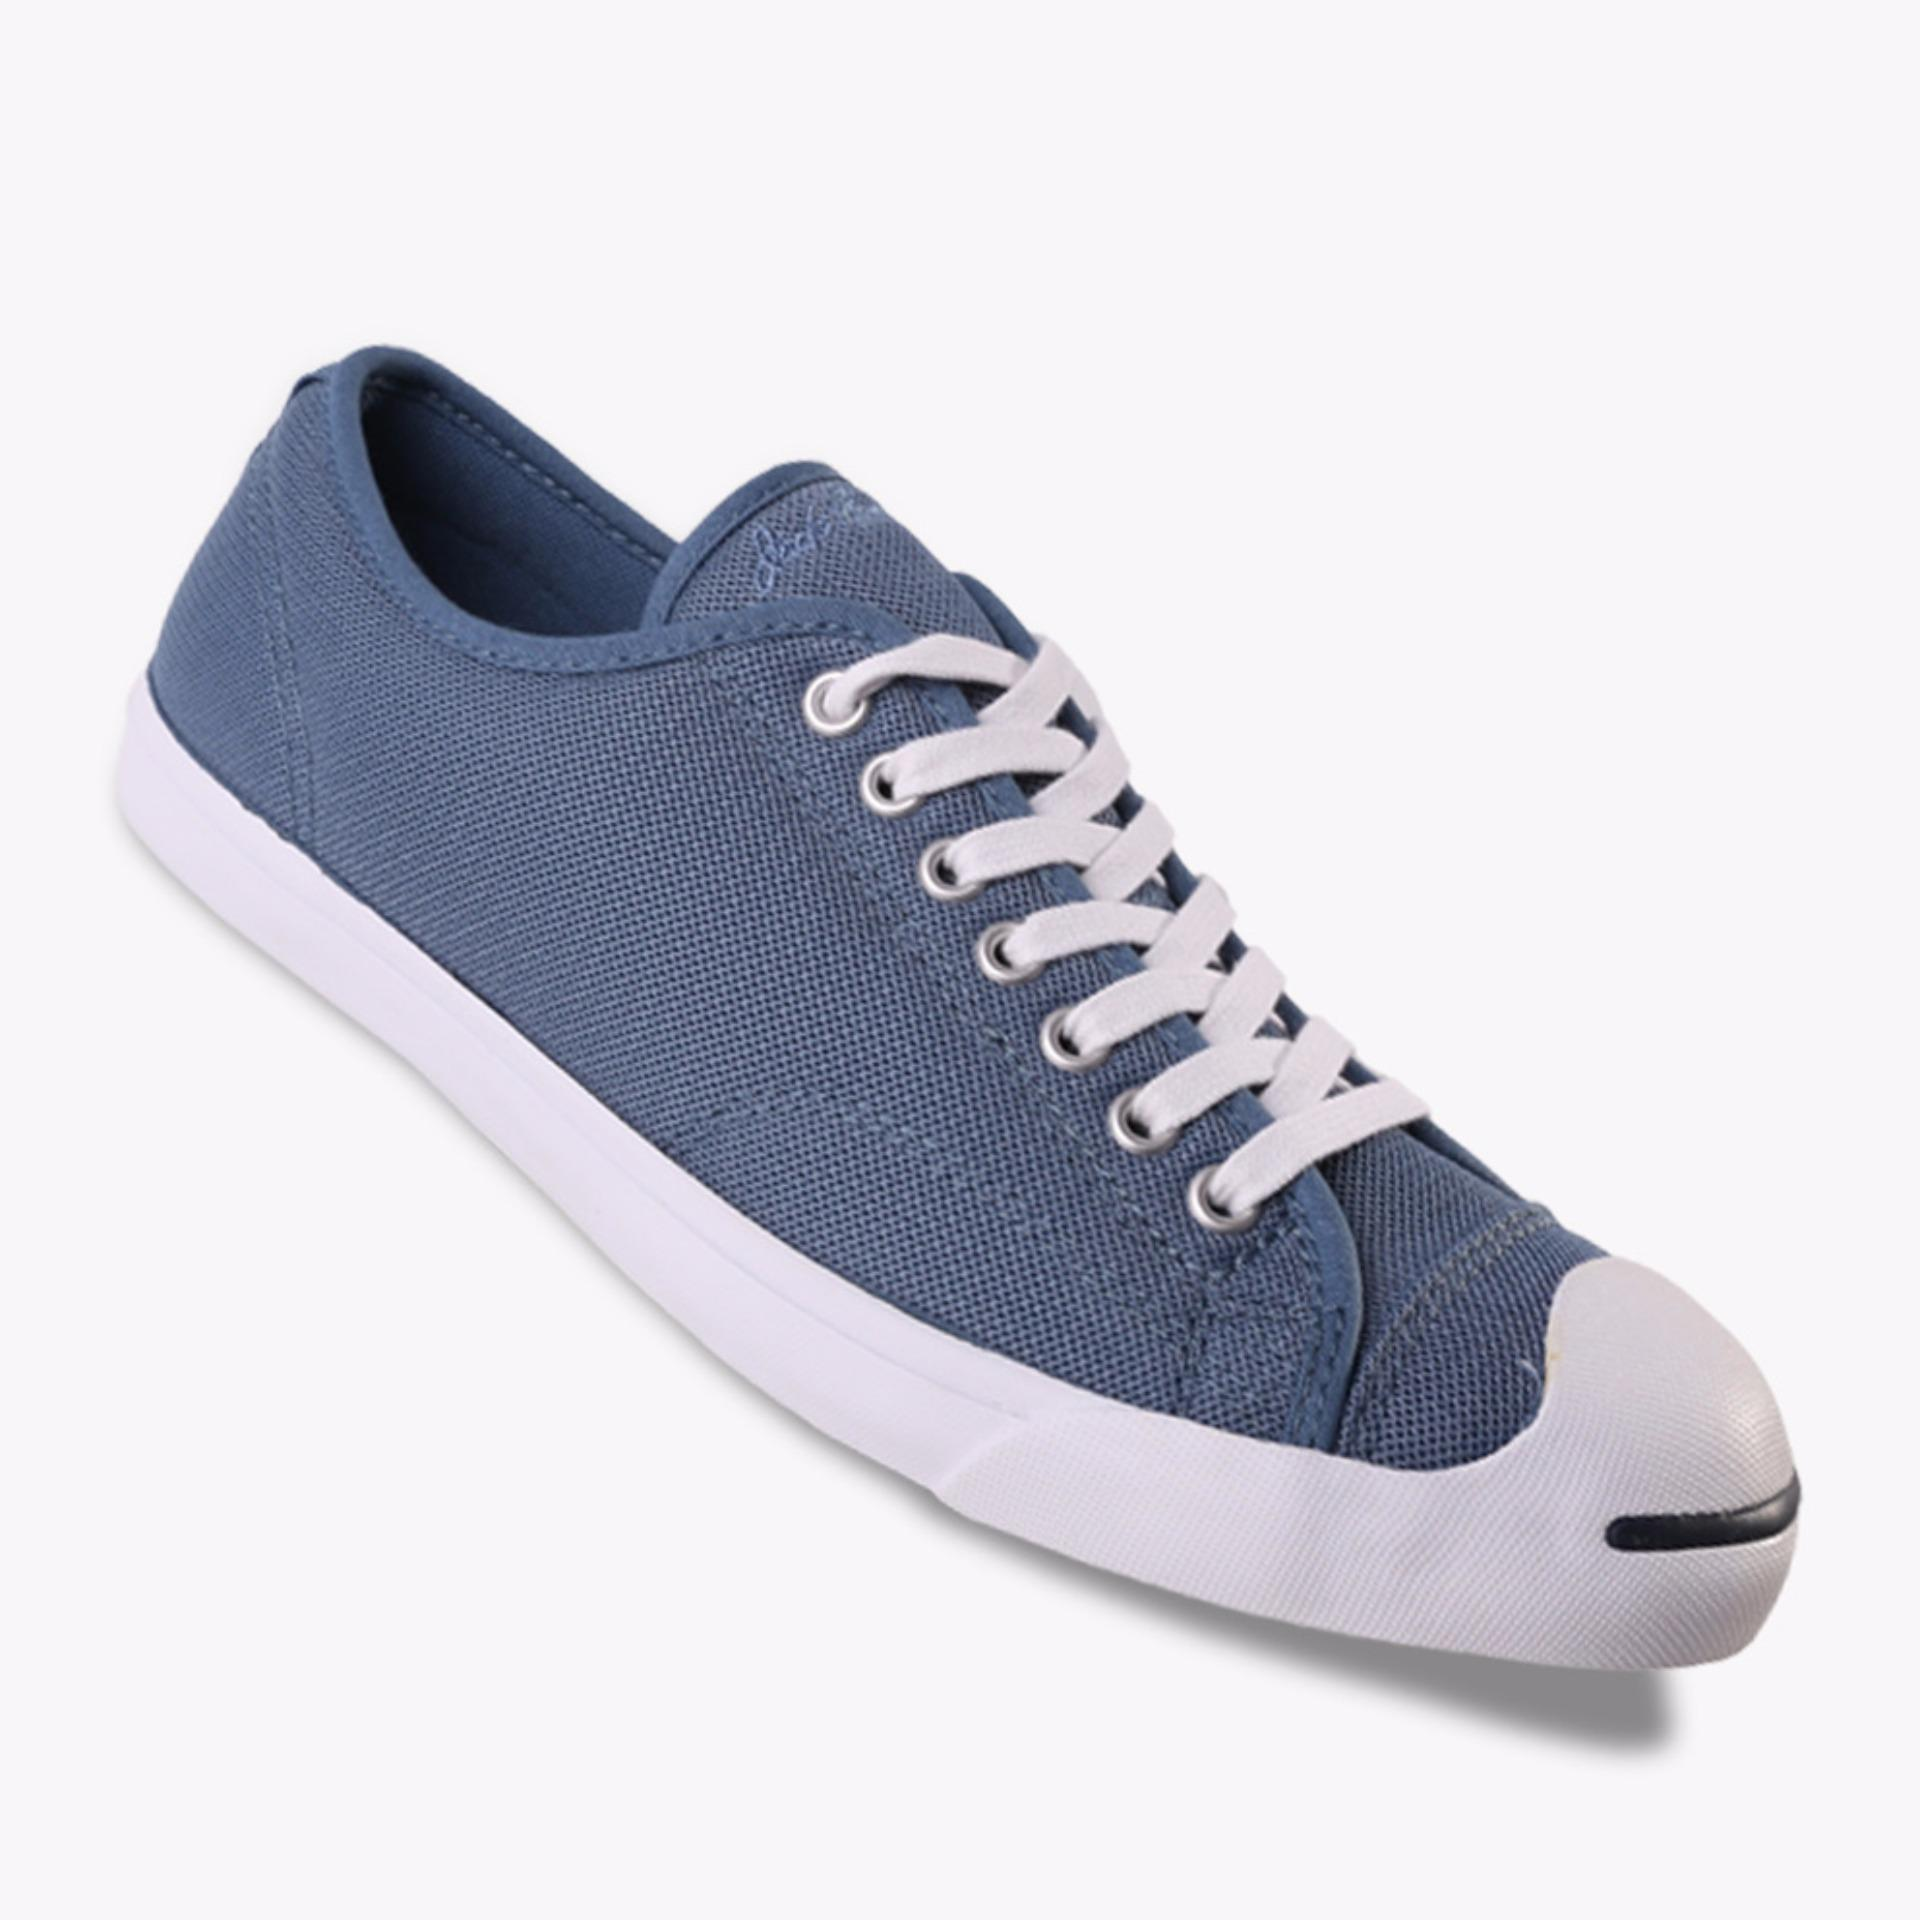 Spesifikasi Converse Jack Purcell Lp Ox Men S Sneakers Shoes Biru Baru